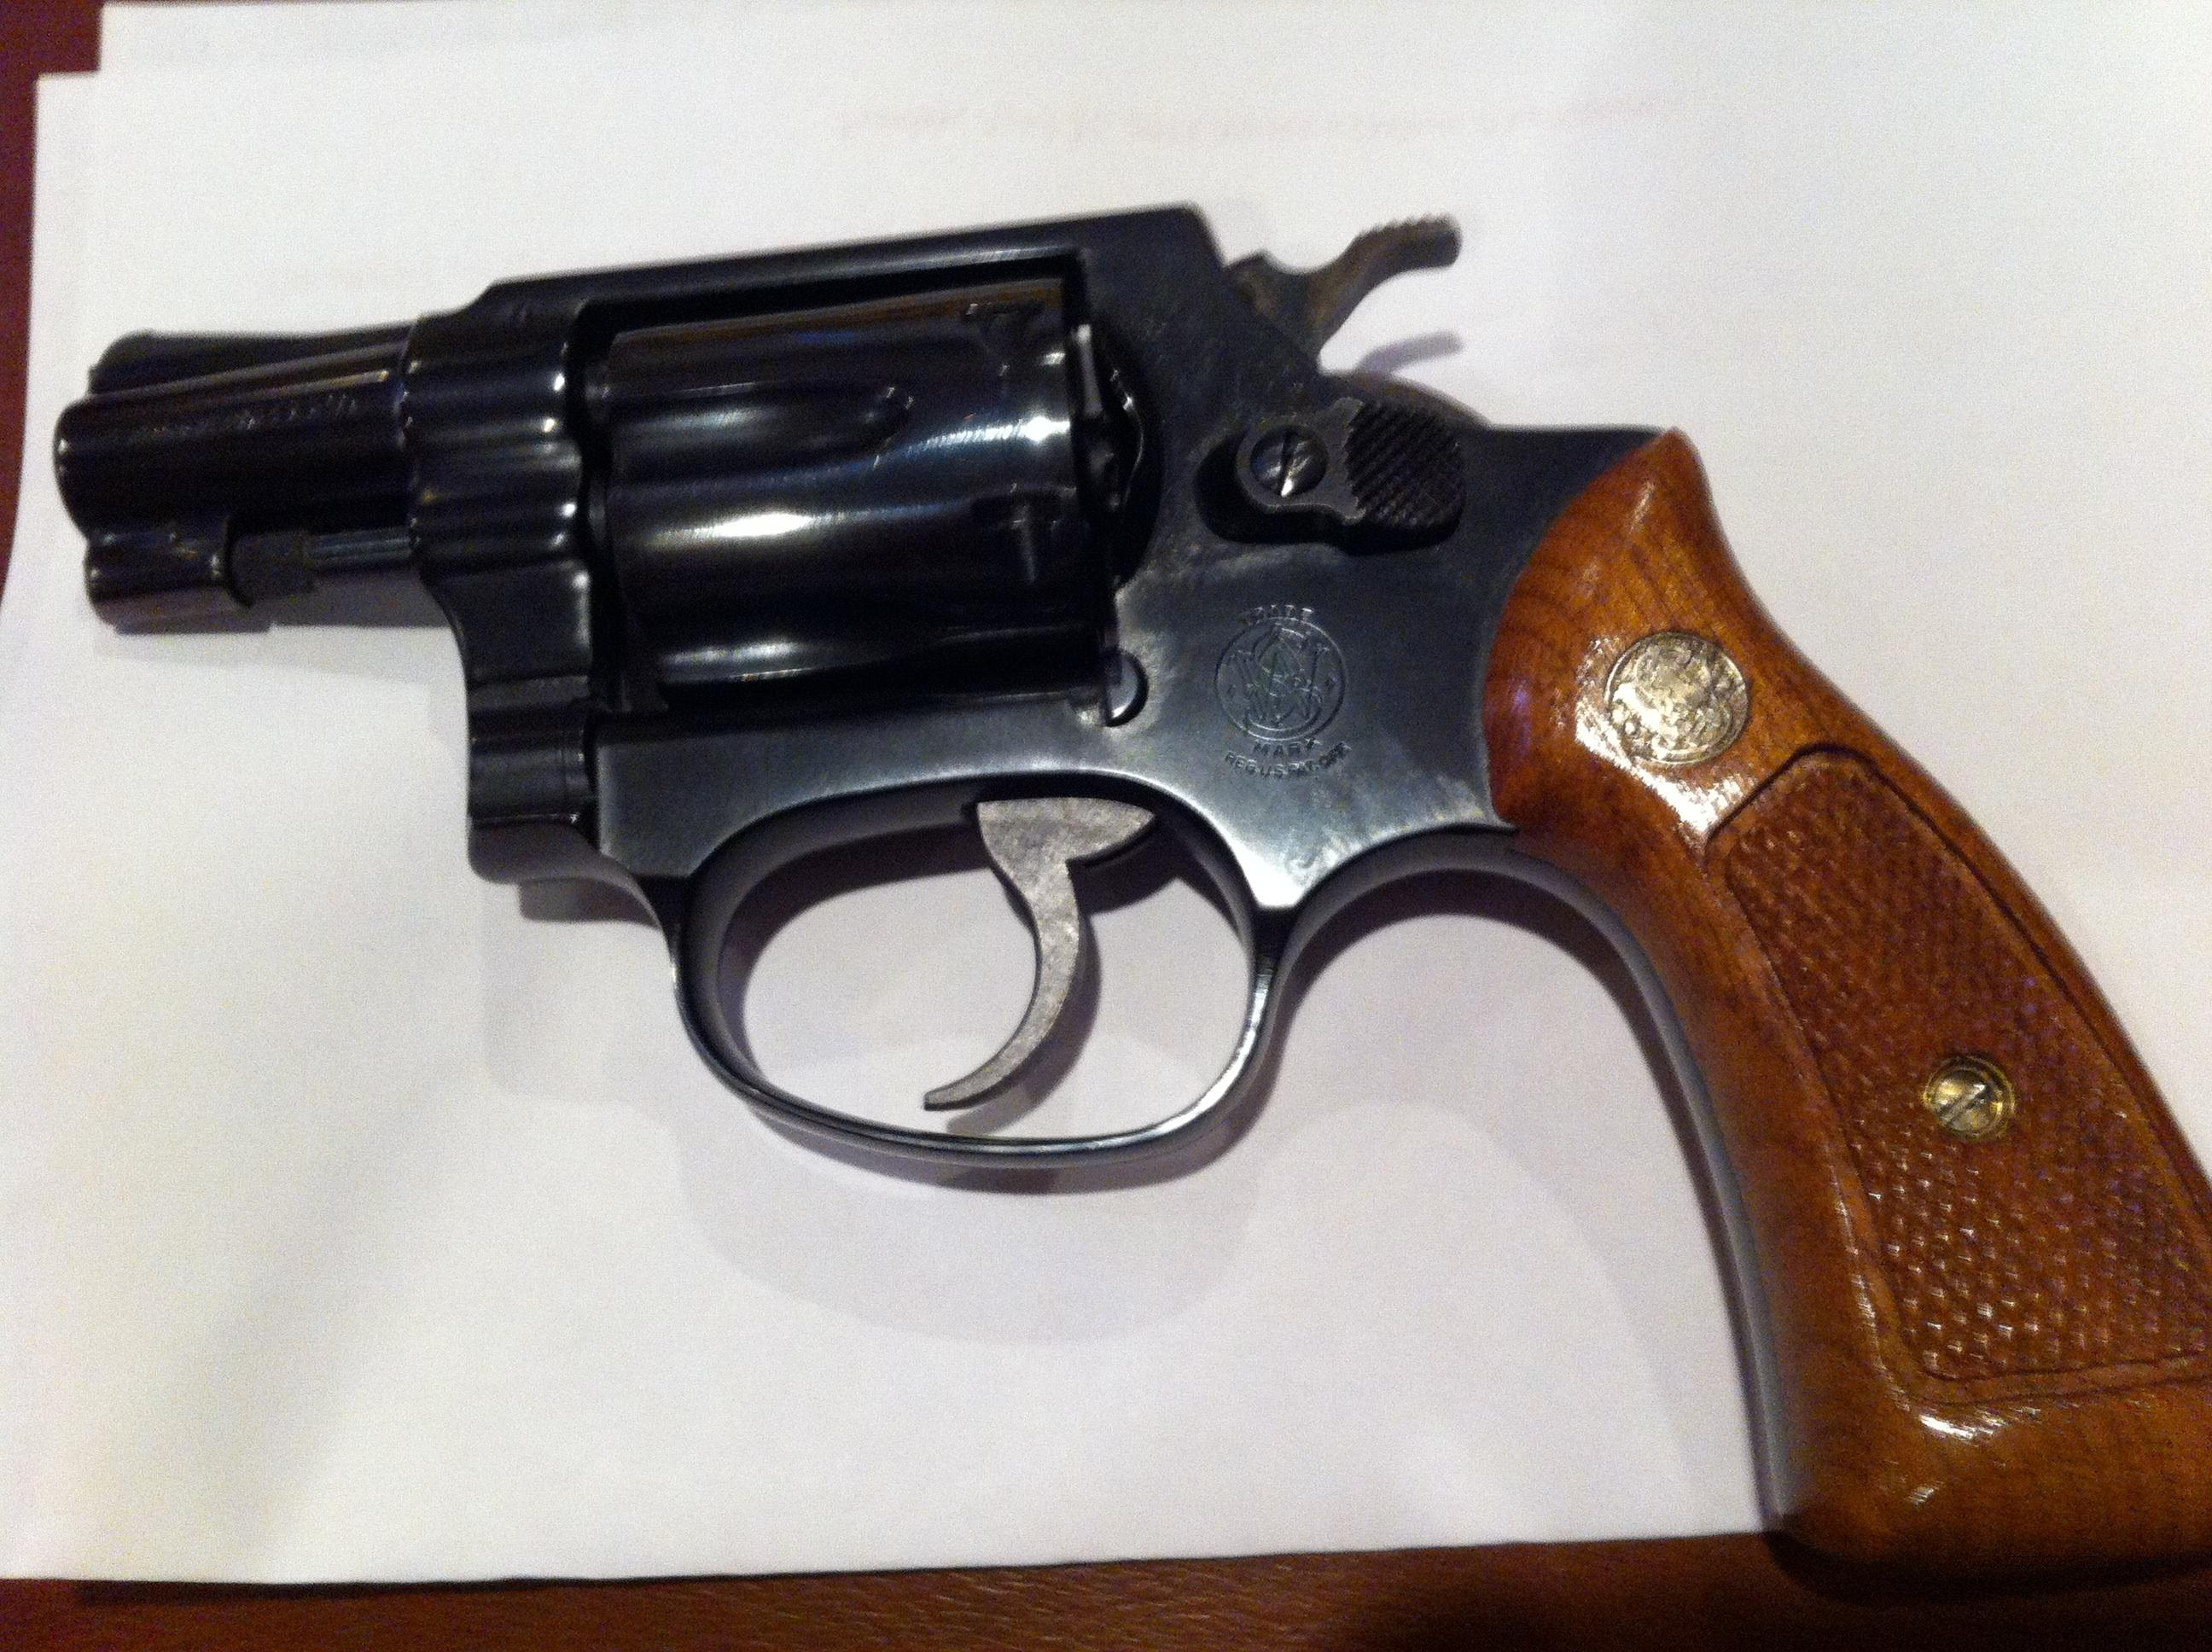 Smith and Wesson Model 31-1 Revolver .32 long  Guns > Pistols > Smith & Wesson Revolvers > Pocket Pistols